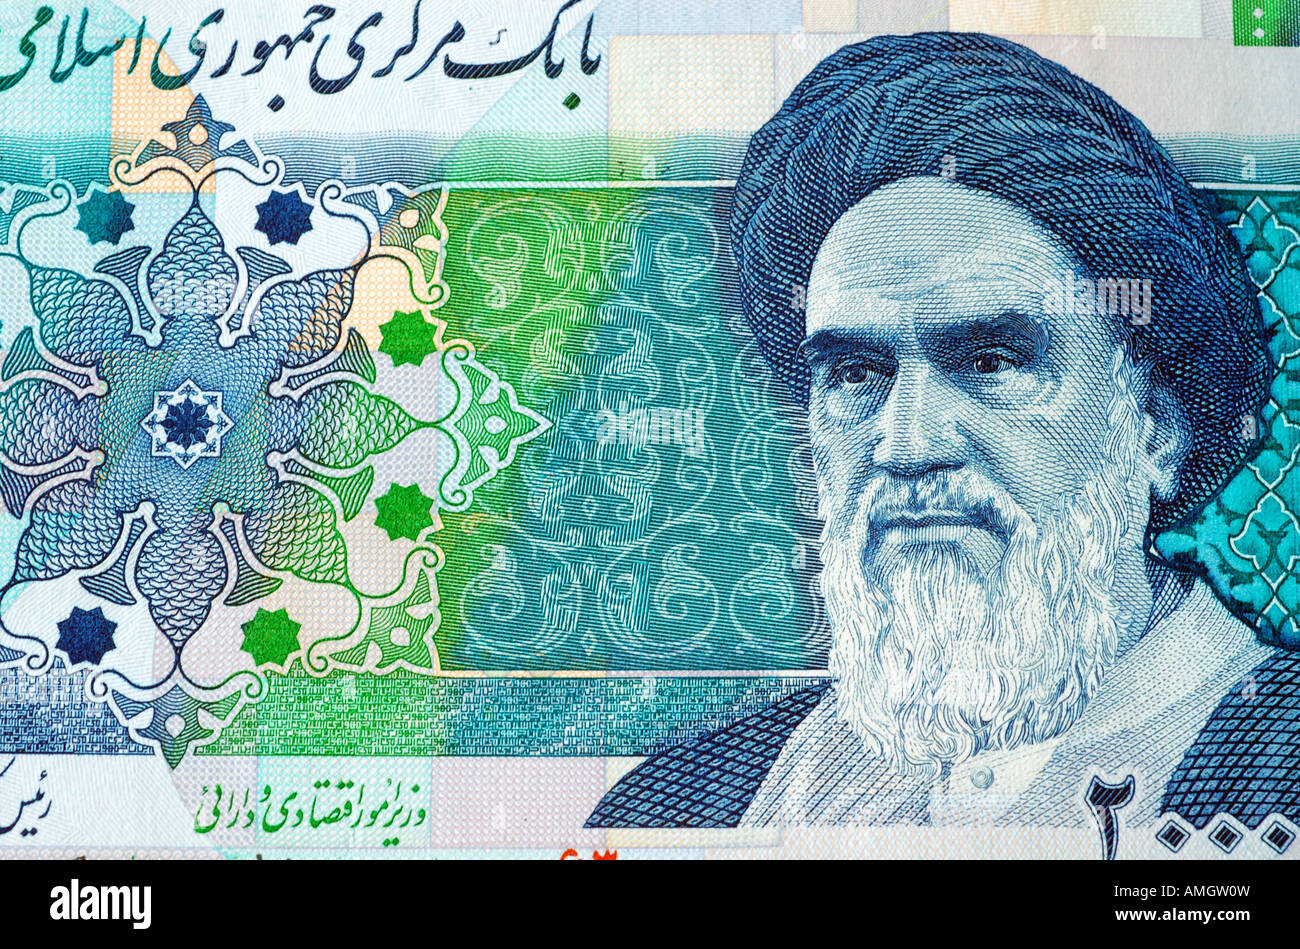 Iranian money currency 20 000 rial note stock image